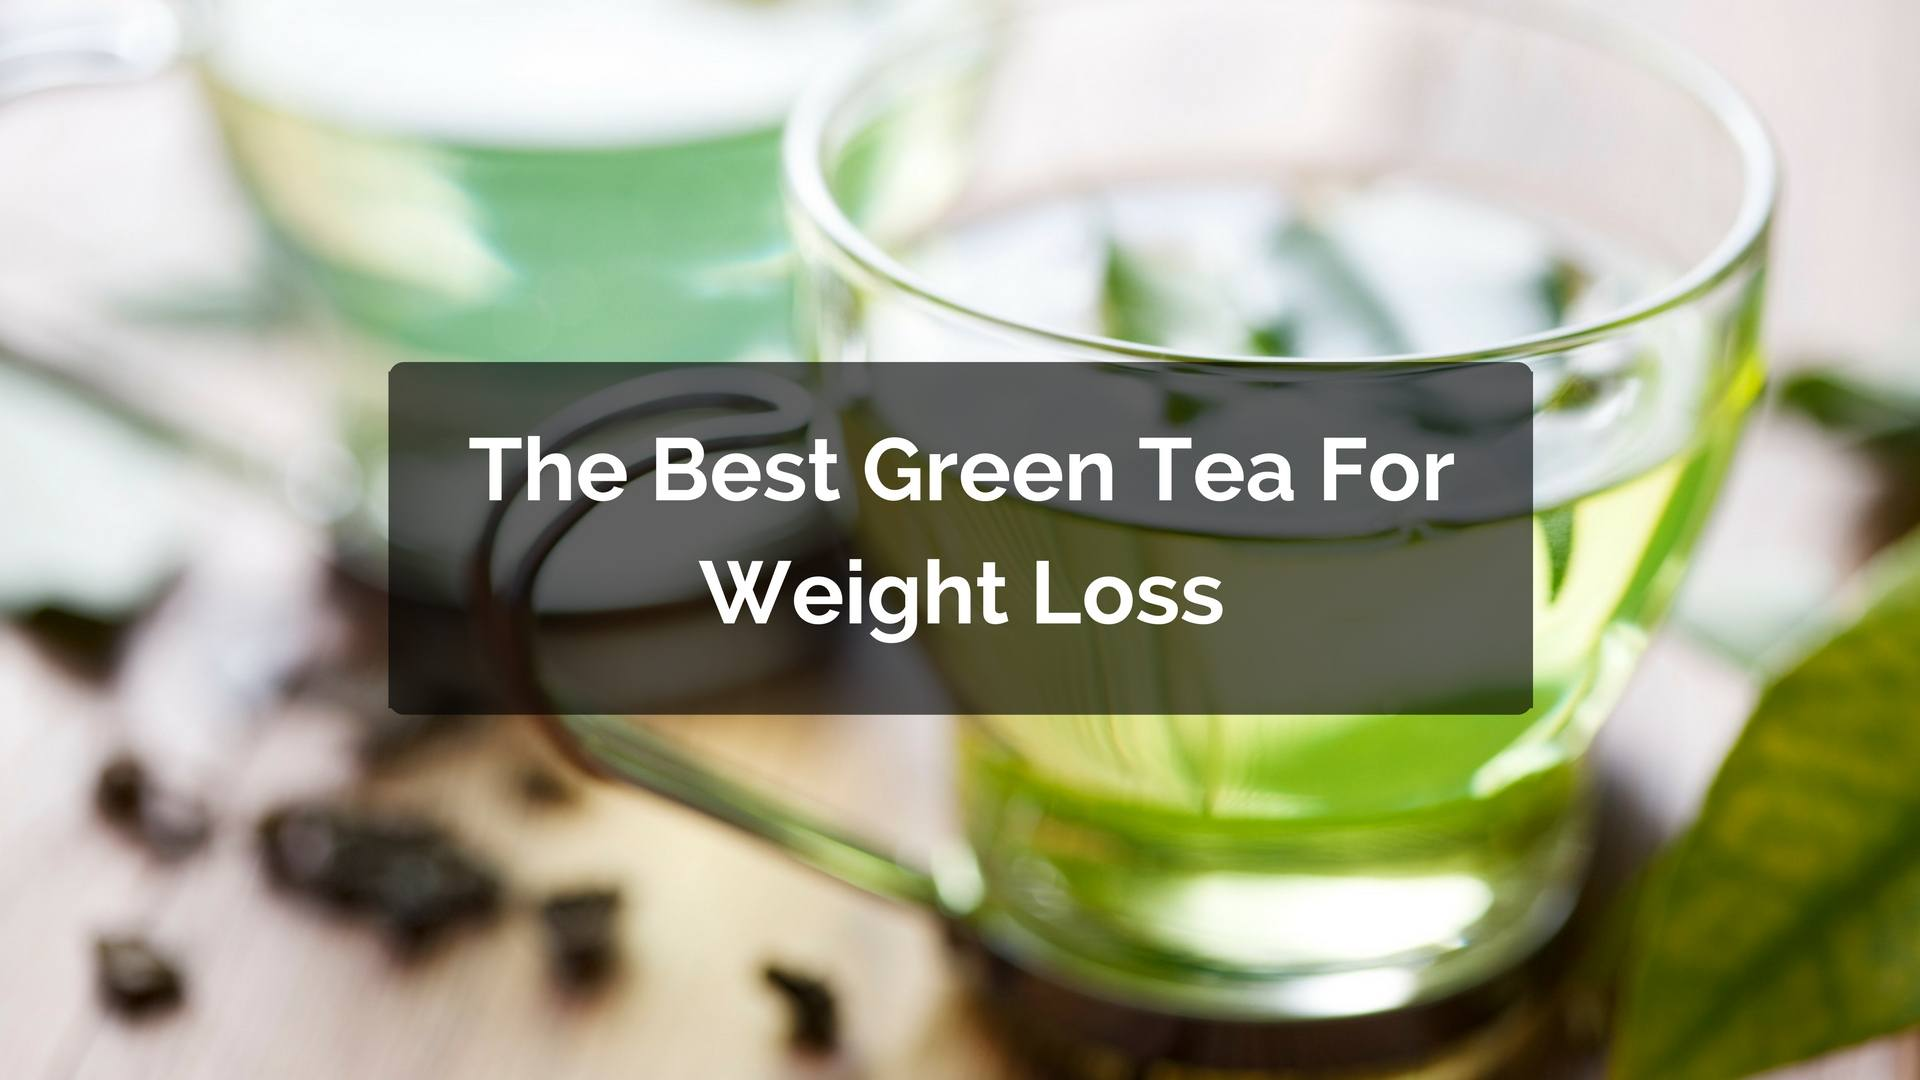 The Best Green Tea For Weight Loss